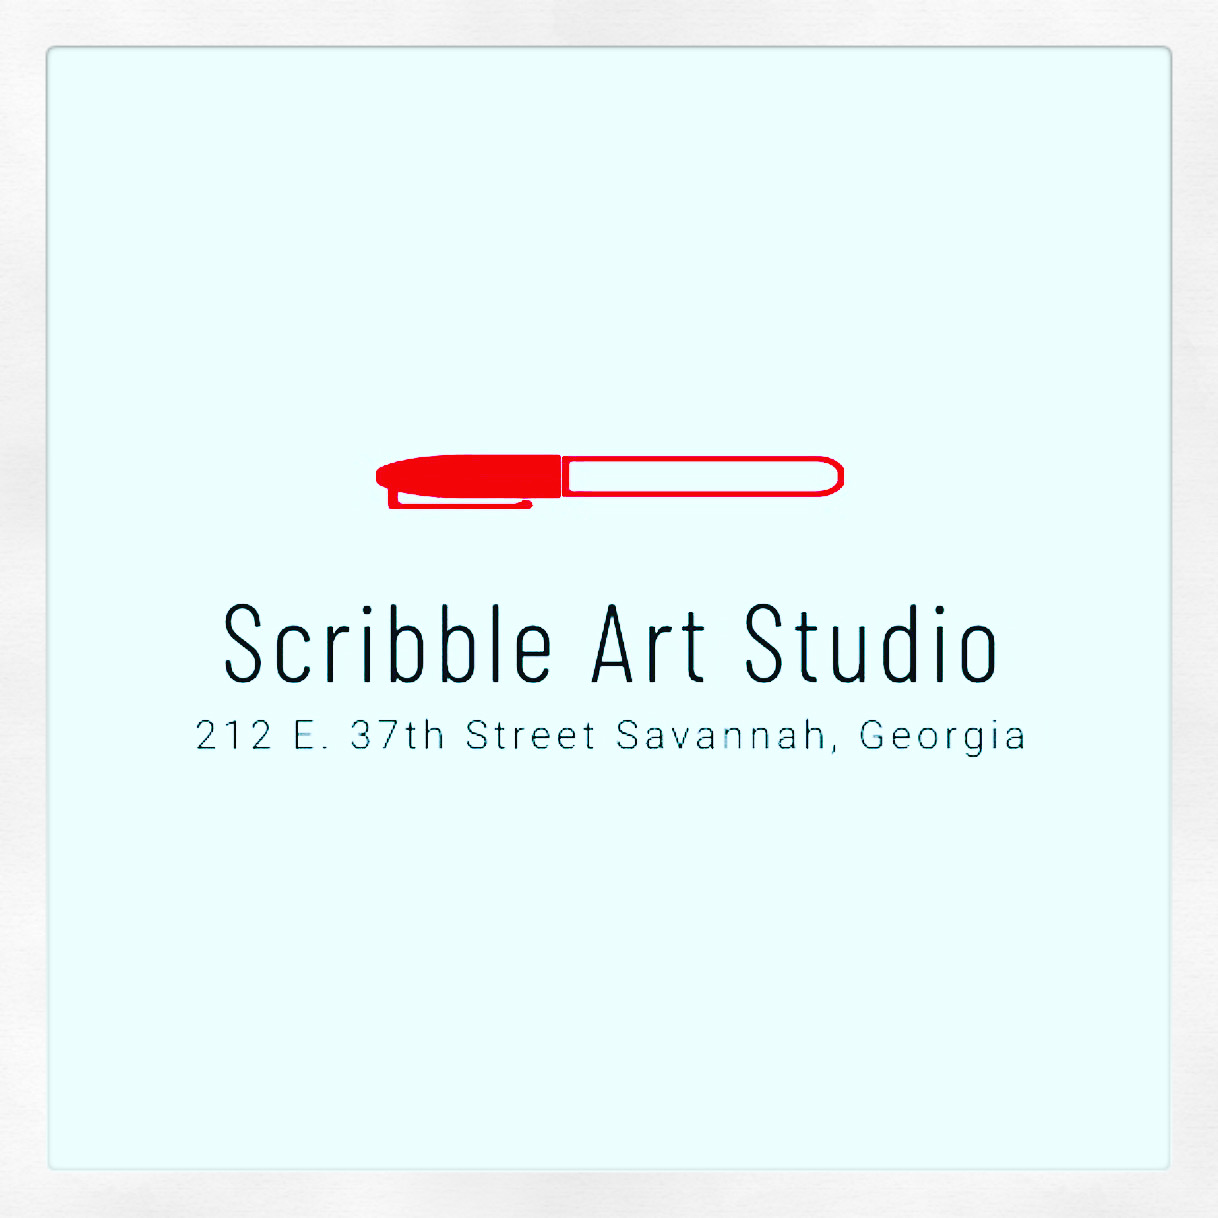 Scribble Art Studio Savannah